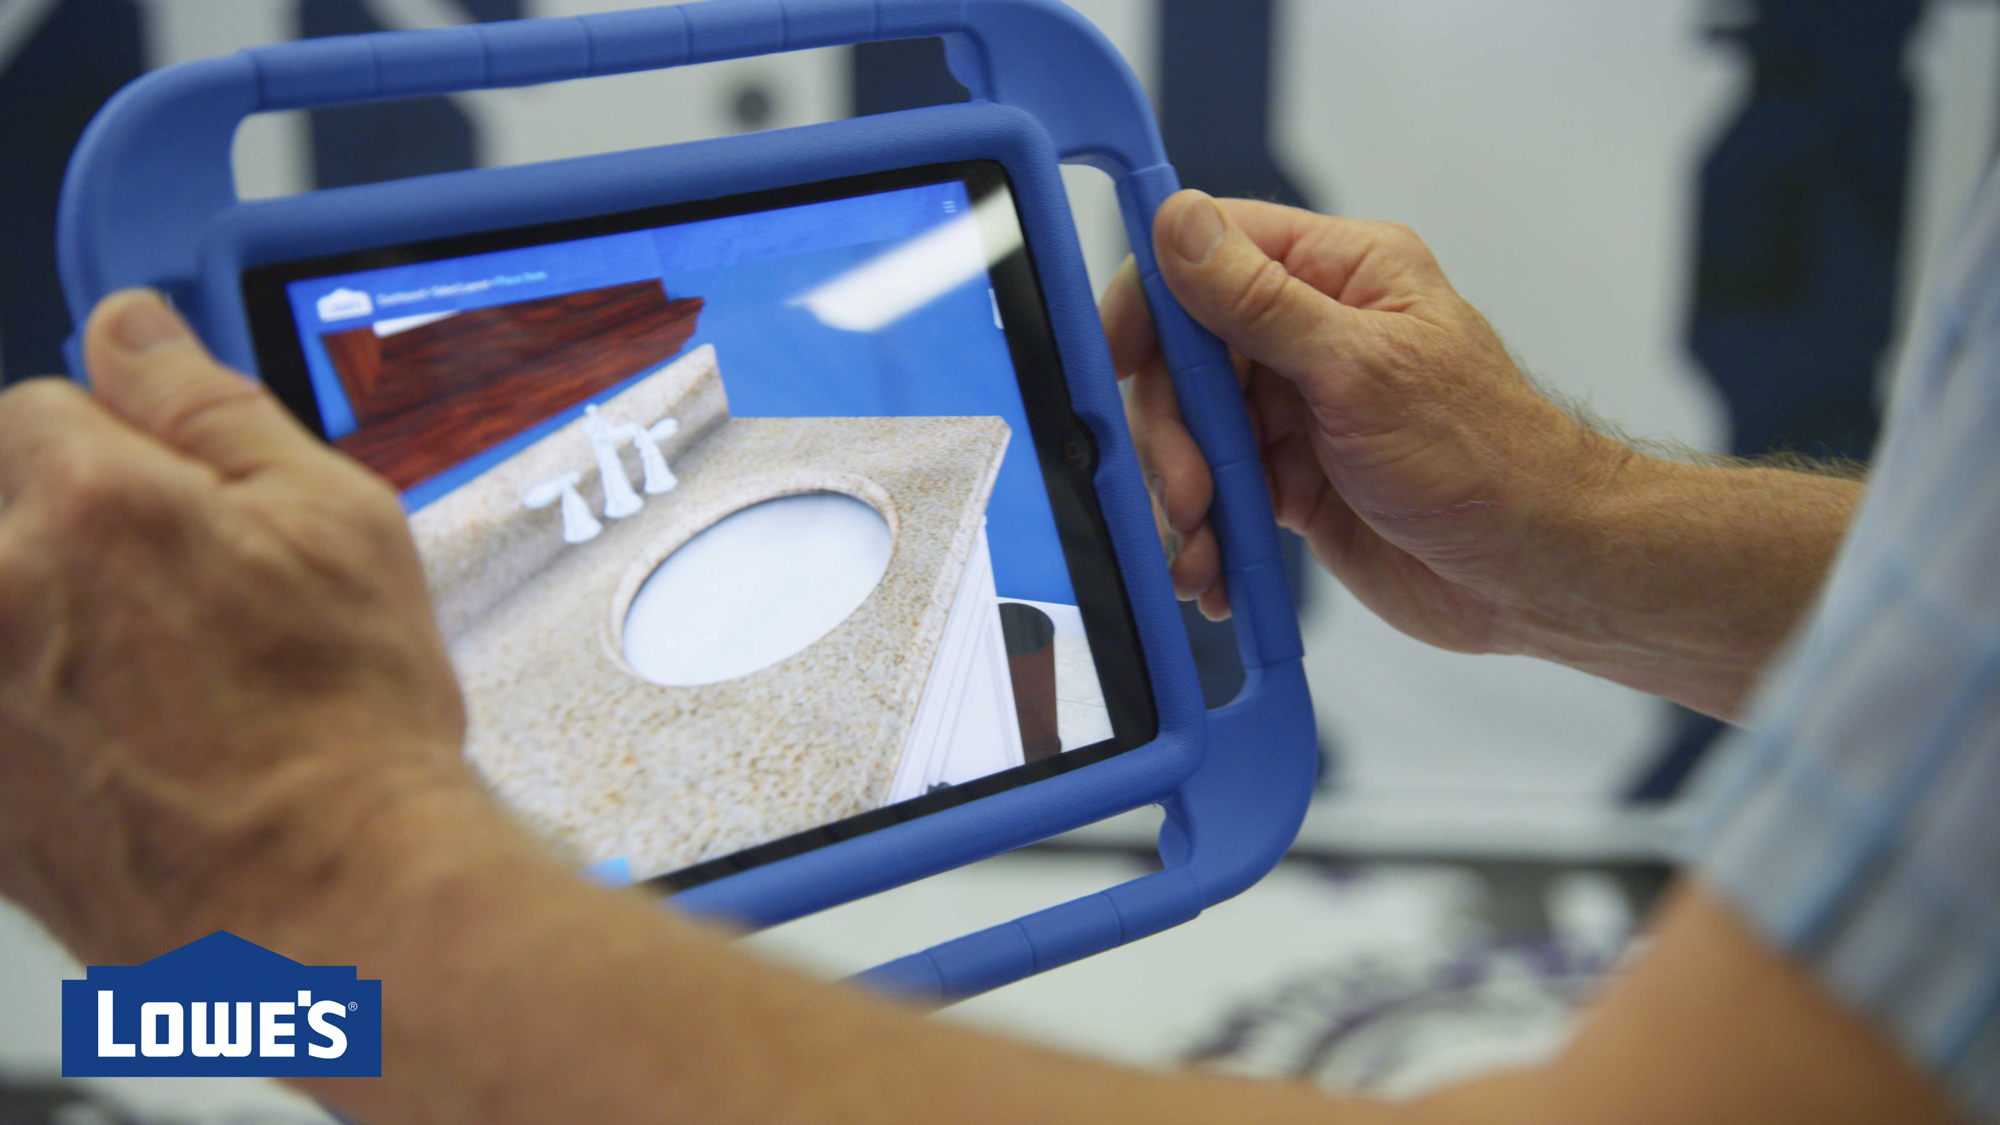 Lowes augmented reality app